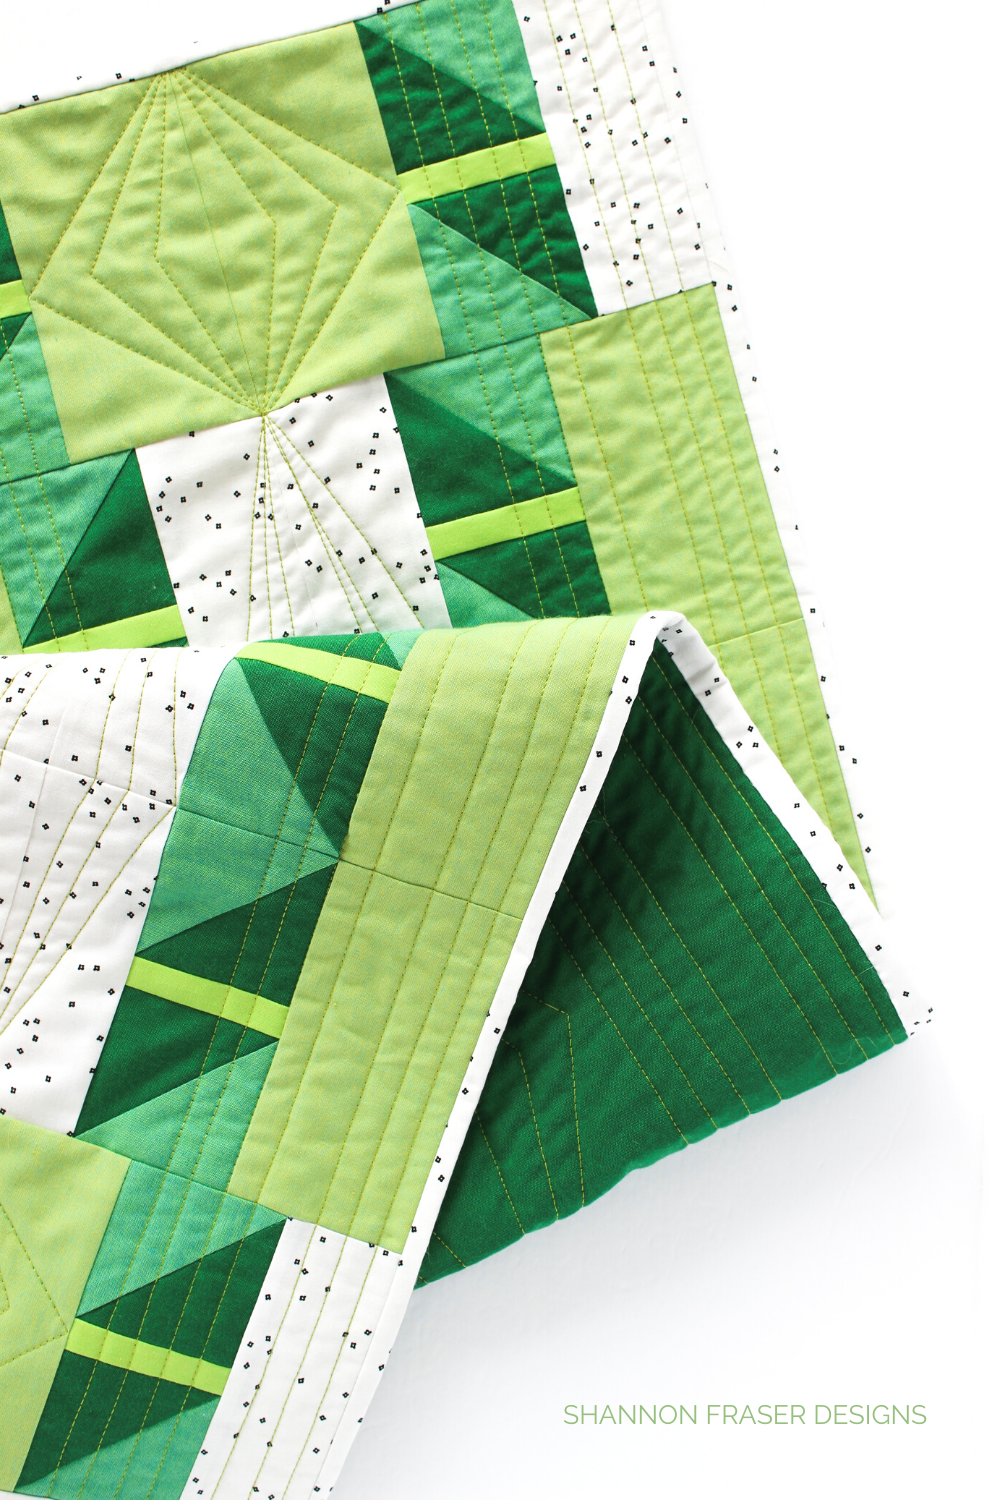 Shattered Star quilted table runner quilting details | Modern table runner pattern | Shannon Fraser Designs #quilting